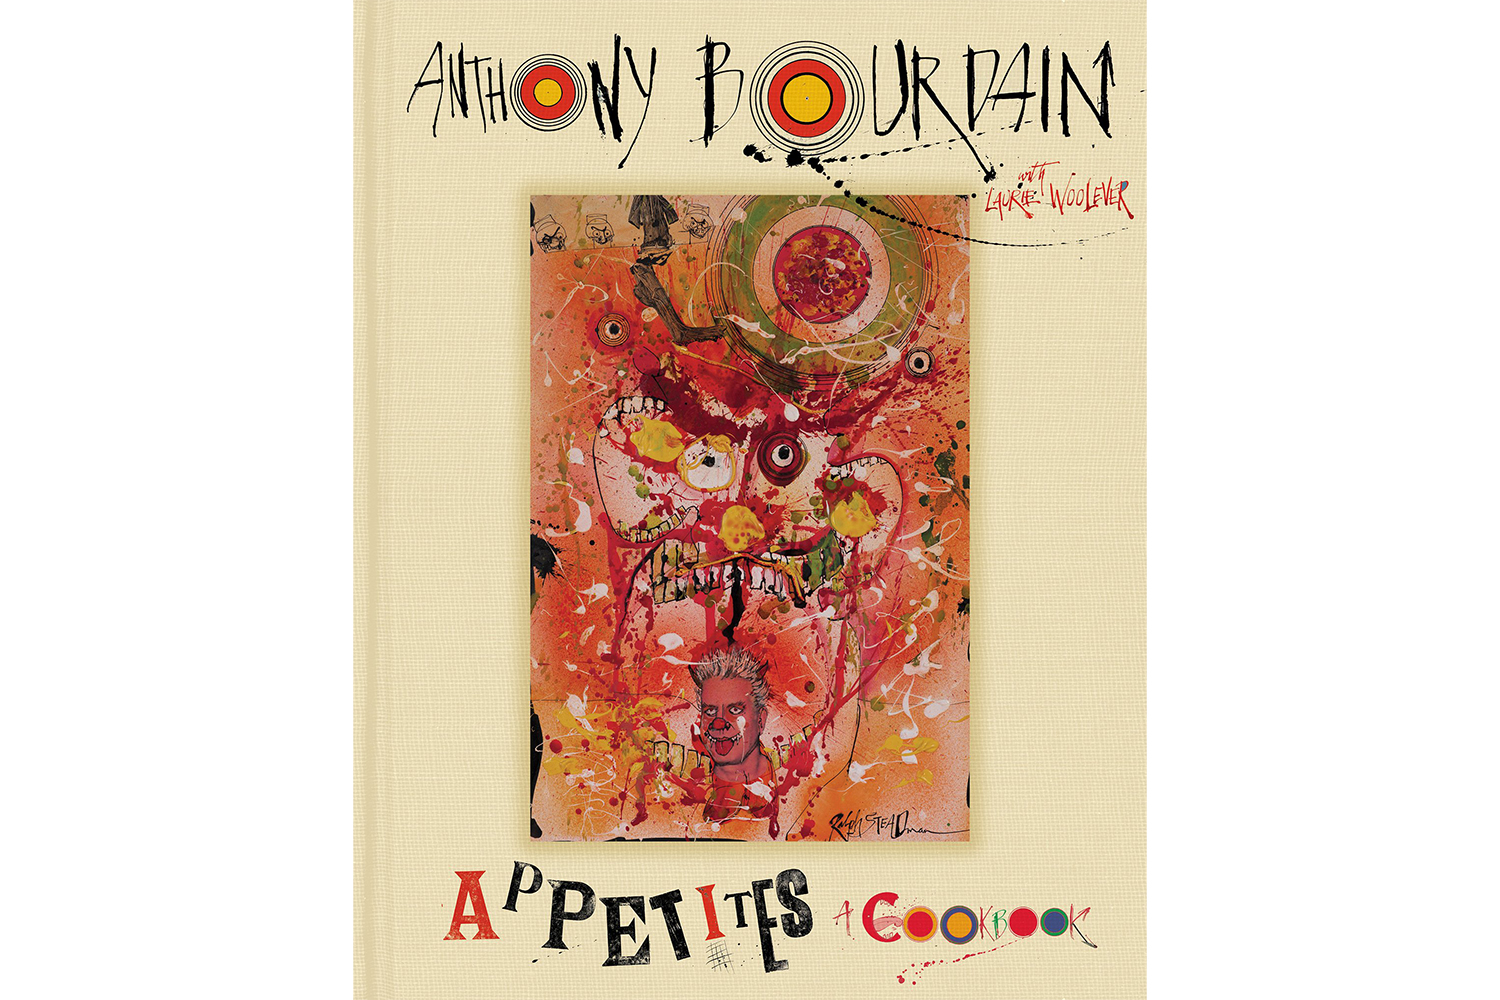 Anthony Bourdain Announces Appetites Cookbook With Cover